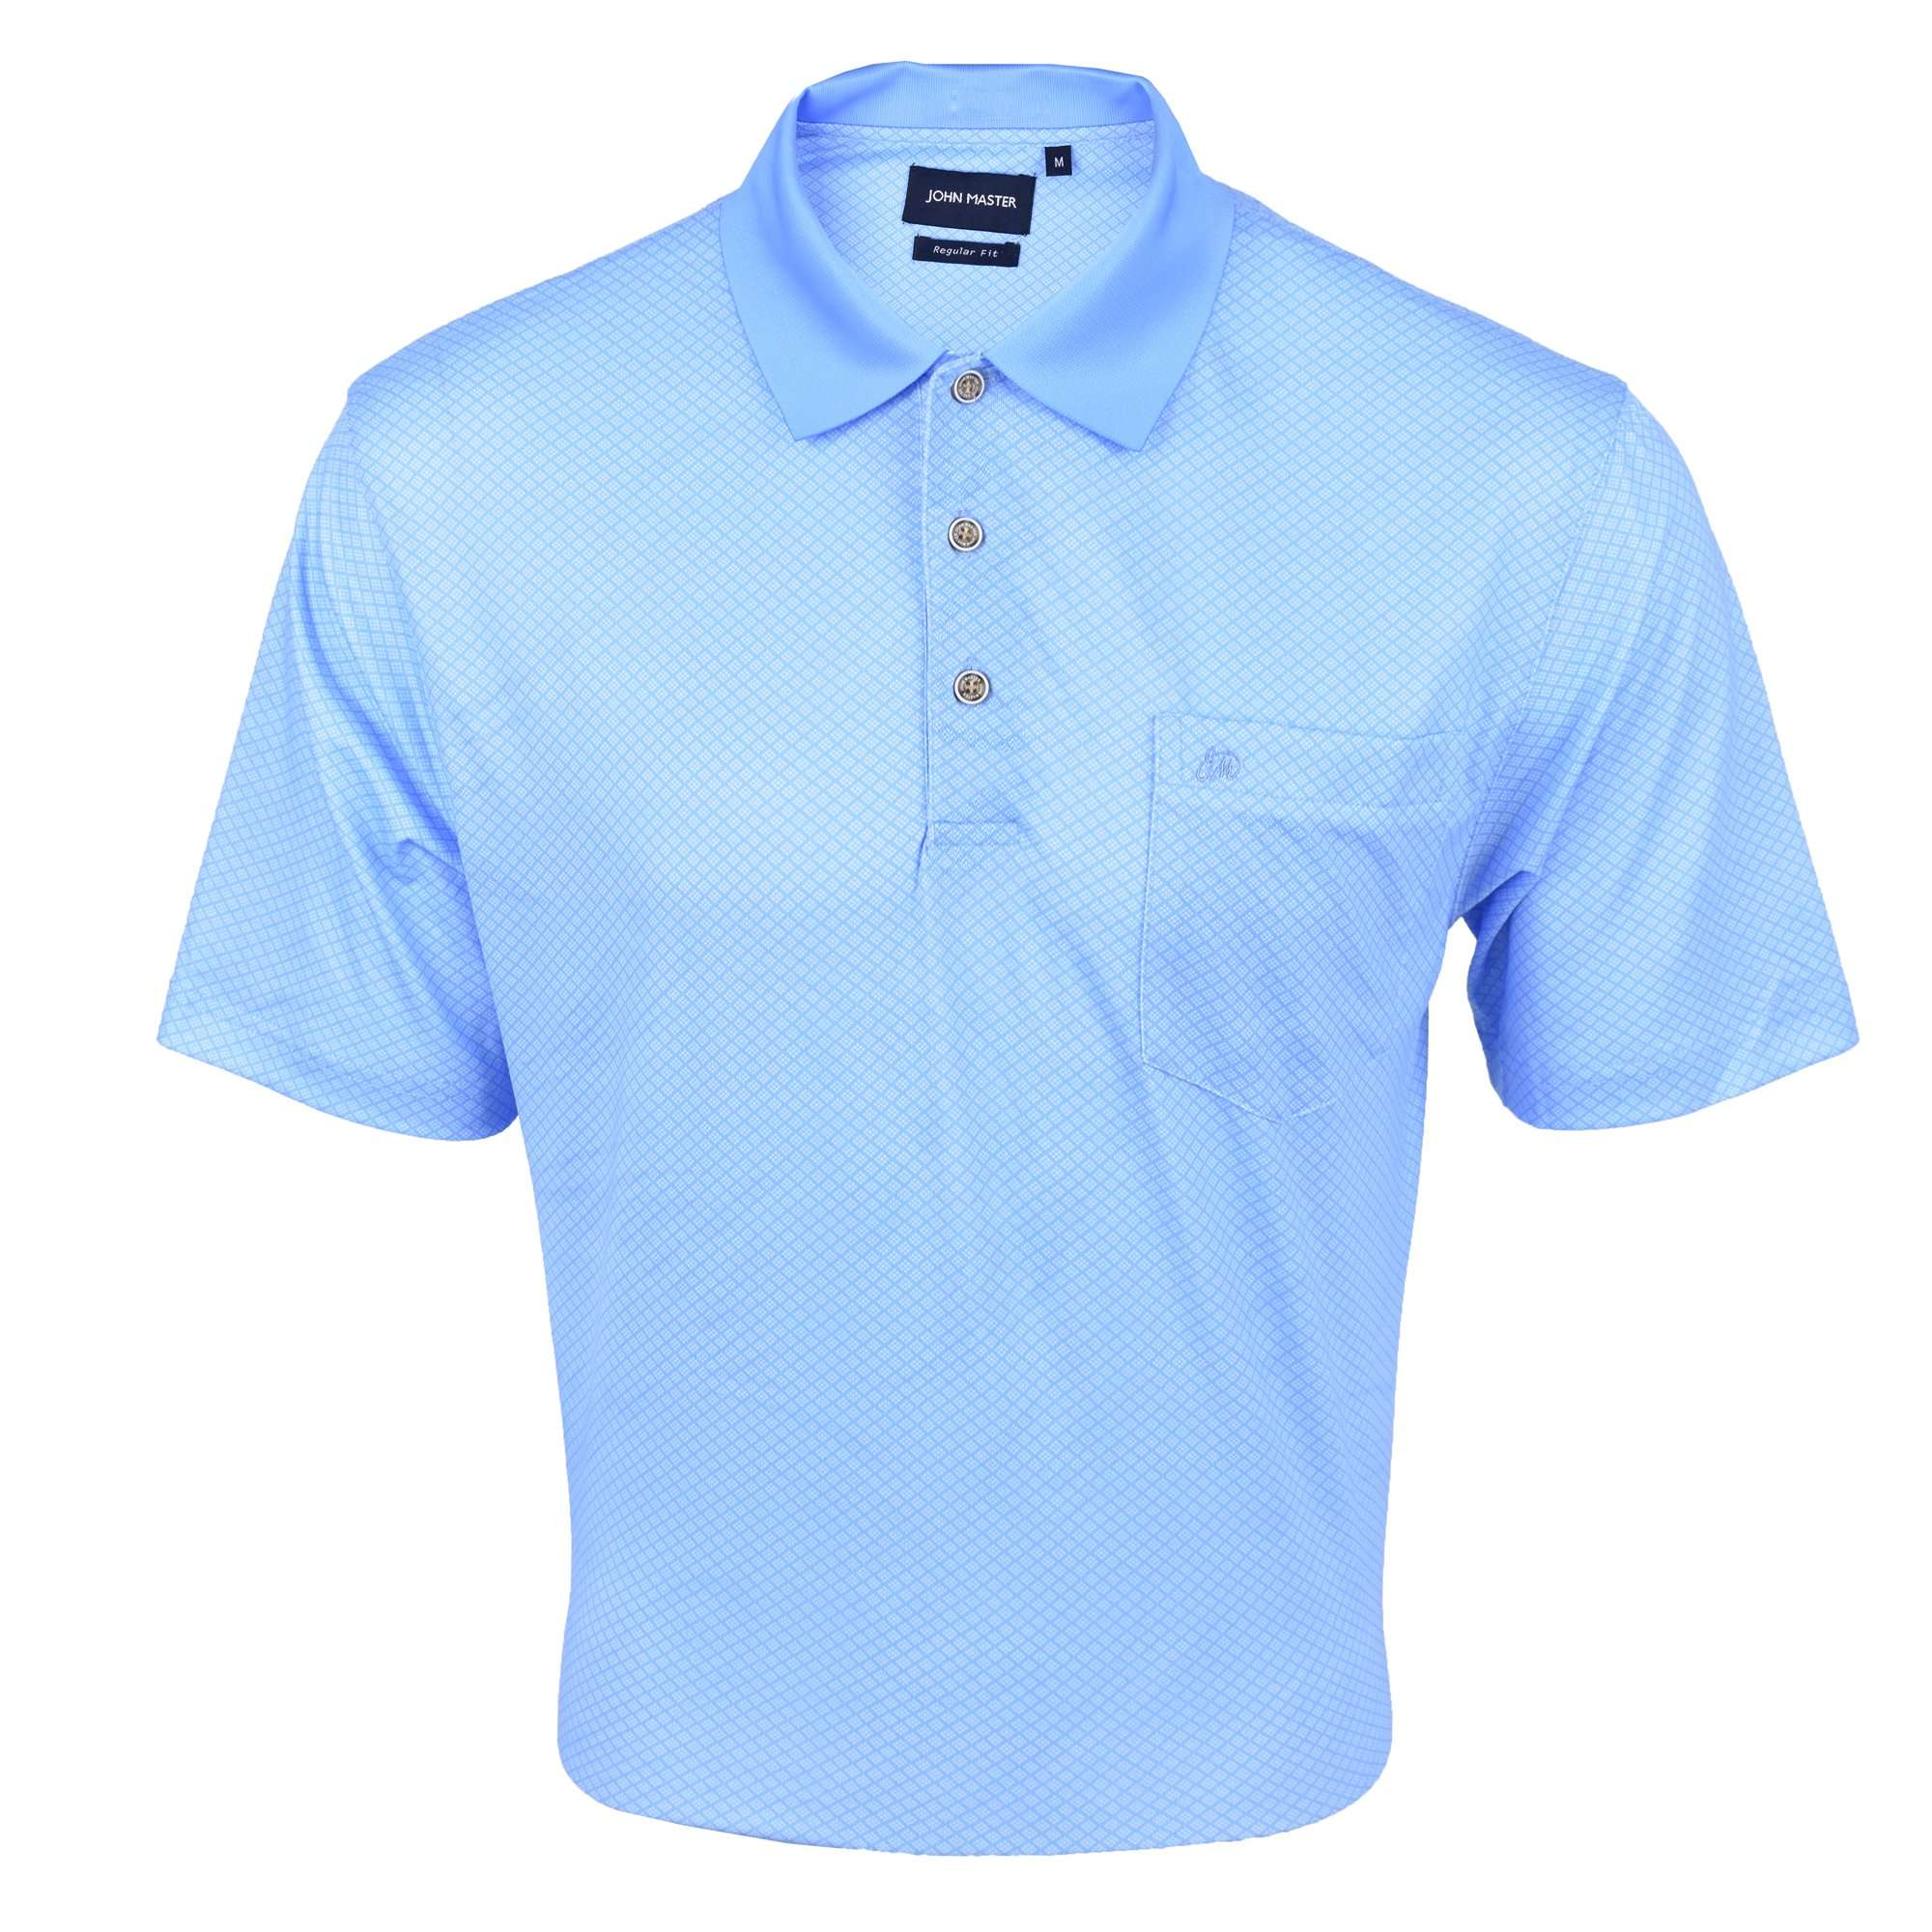 John Master Regular Fit Short Sleeve Polo Tee Blue 8068001-L5 : Buy John Master online at CMG.MY